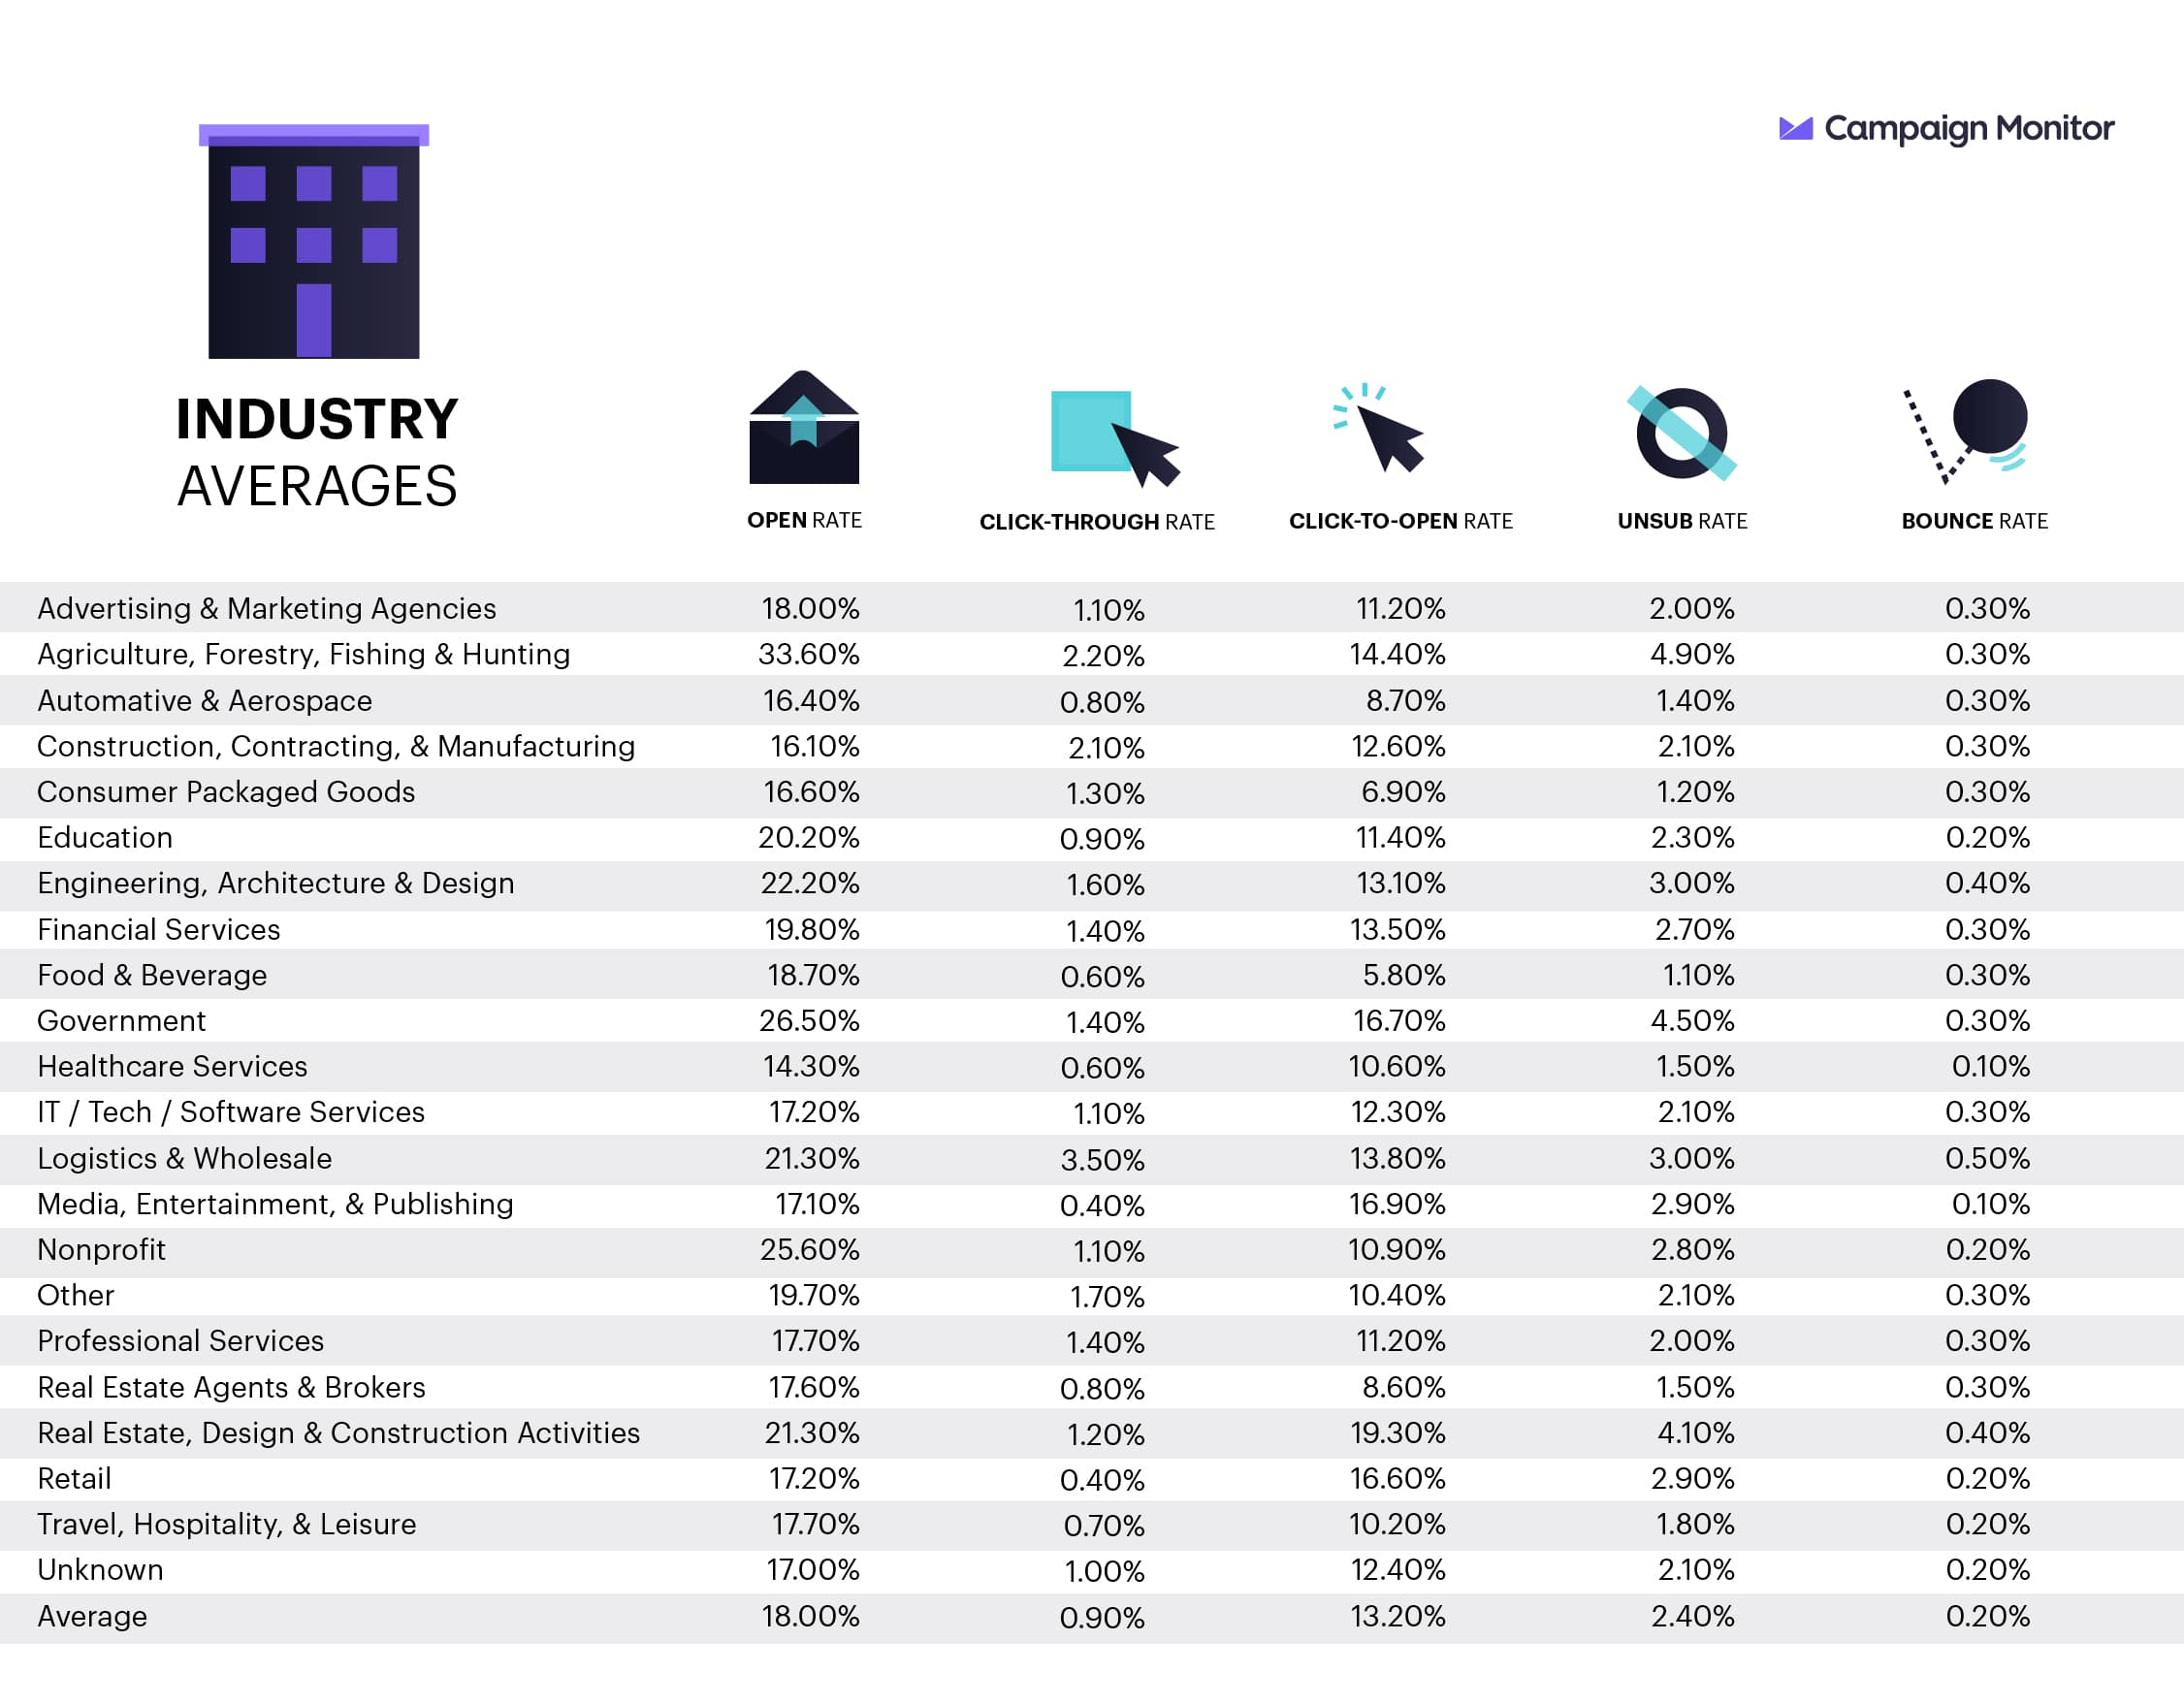 UK industry averages for open, click-through, click-to-open, unsubscribe, and bounce rates